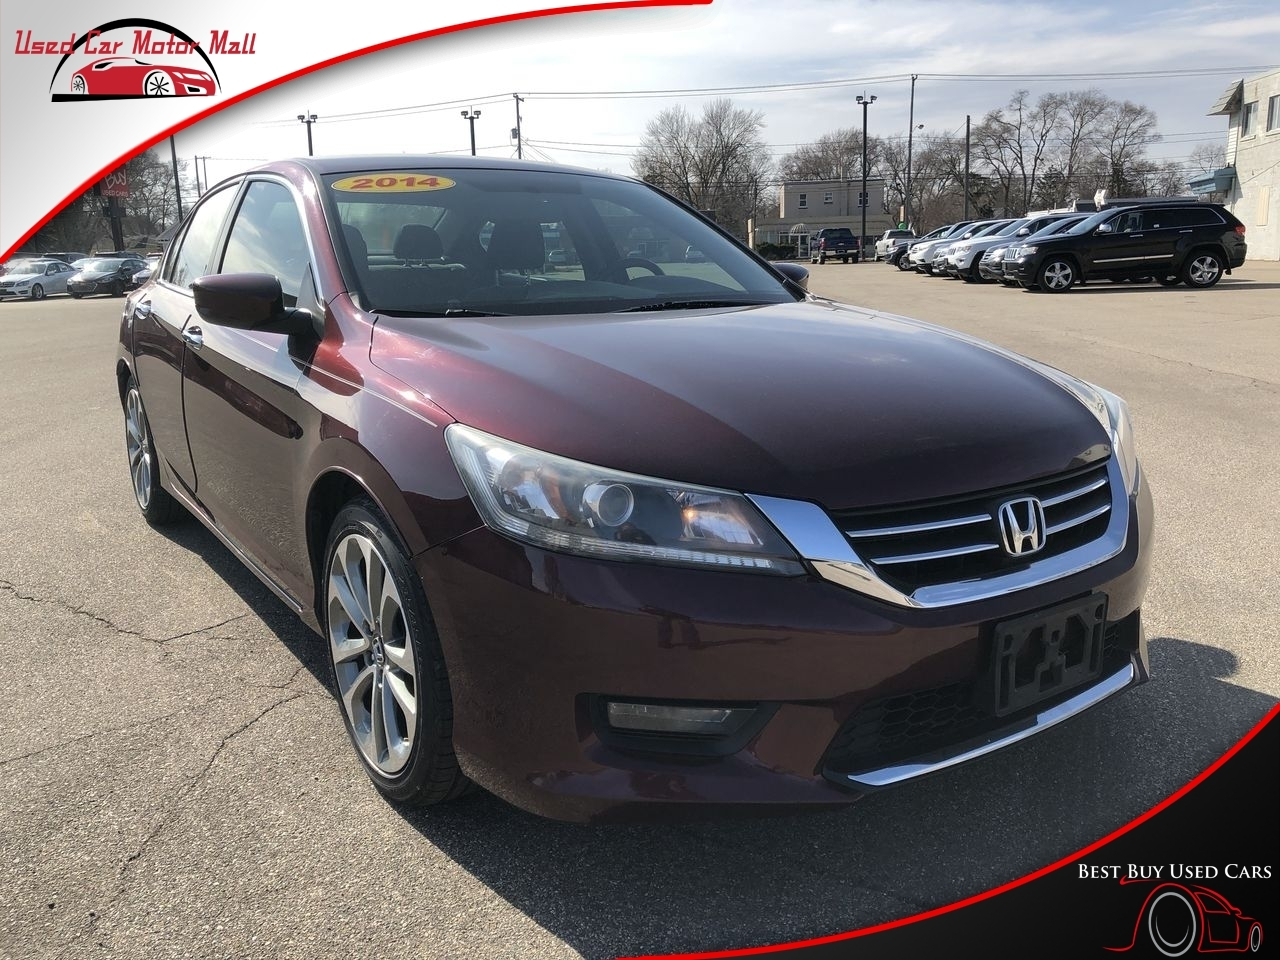 2015 Honda Accord EX-L, 235750, Photo 1